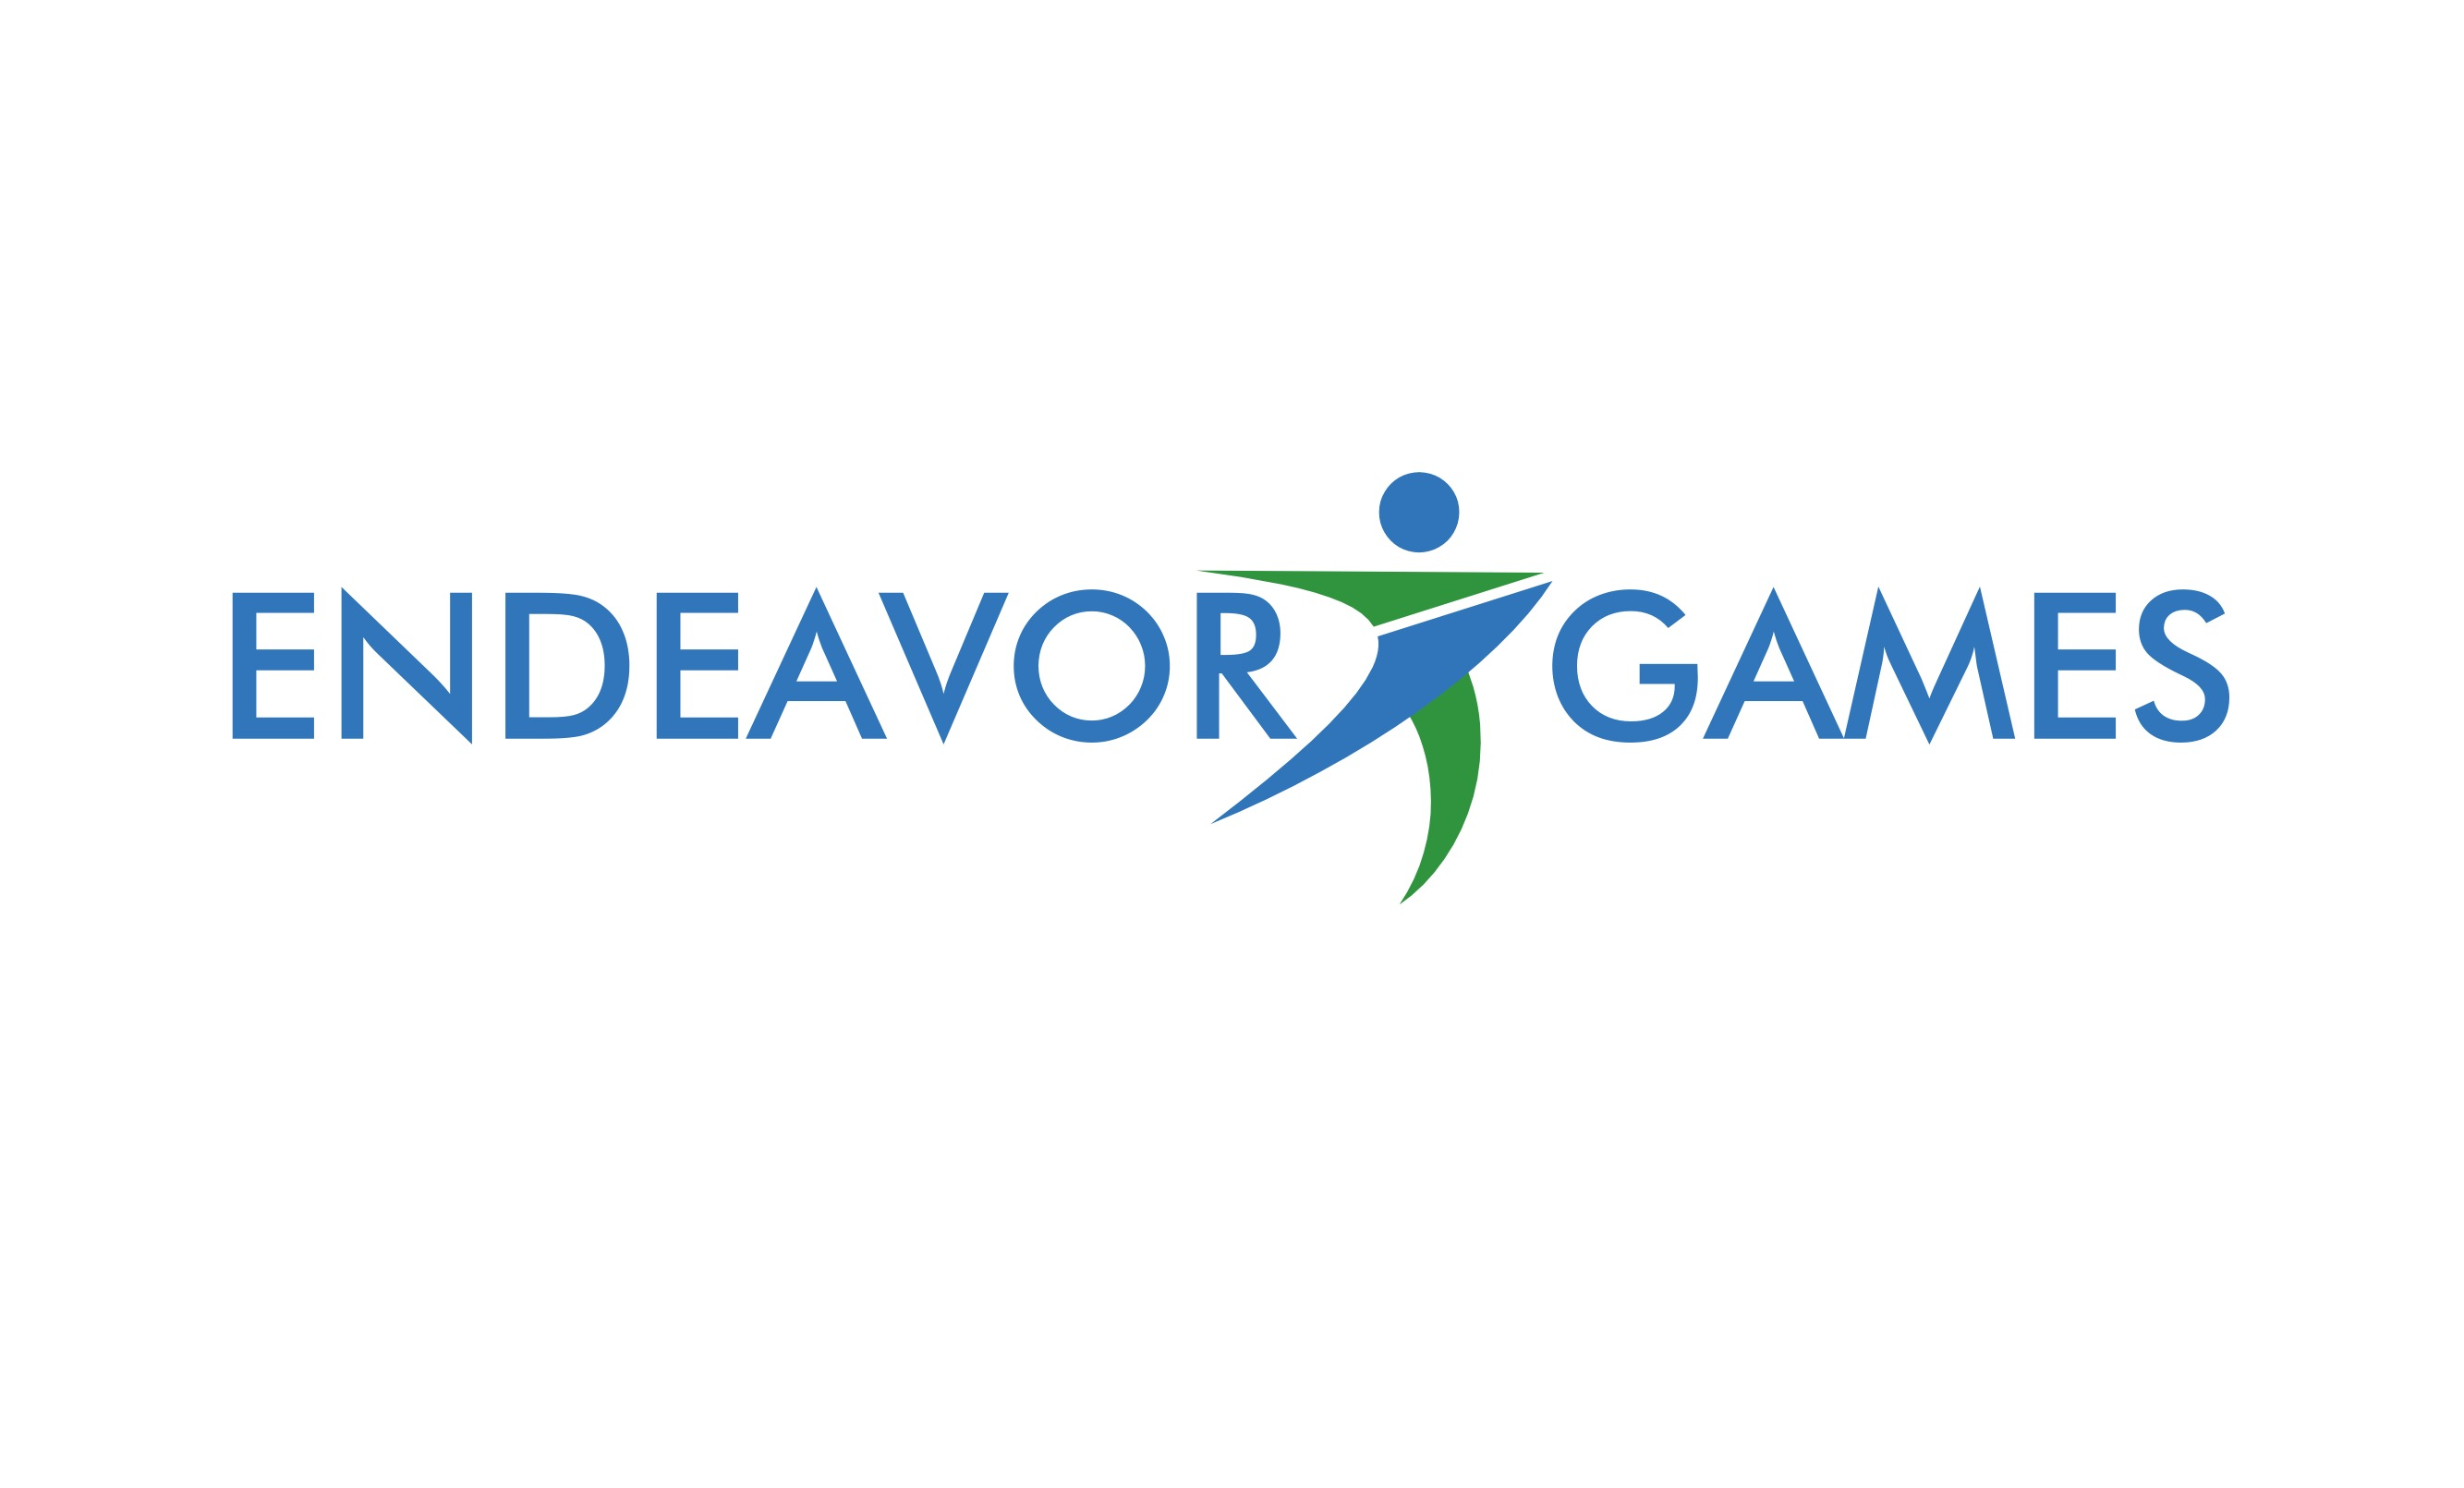 UCO Endeavor Games